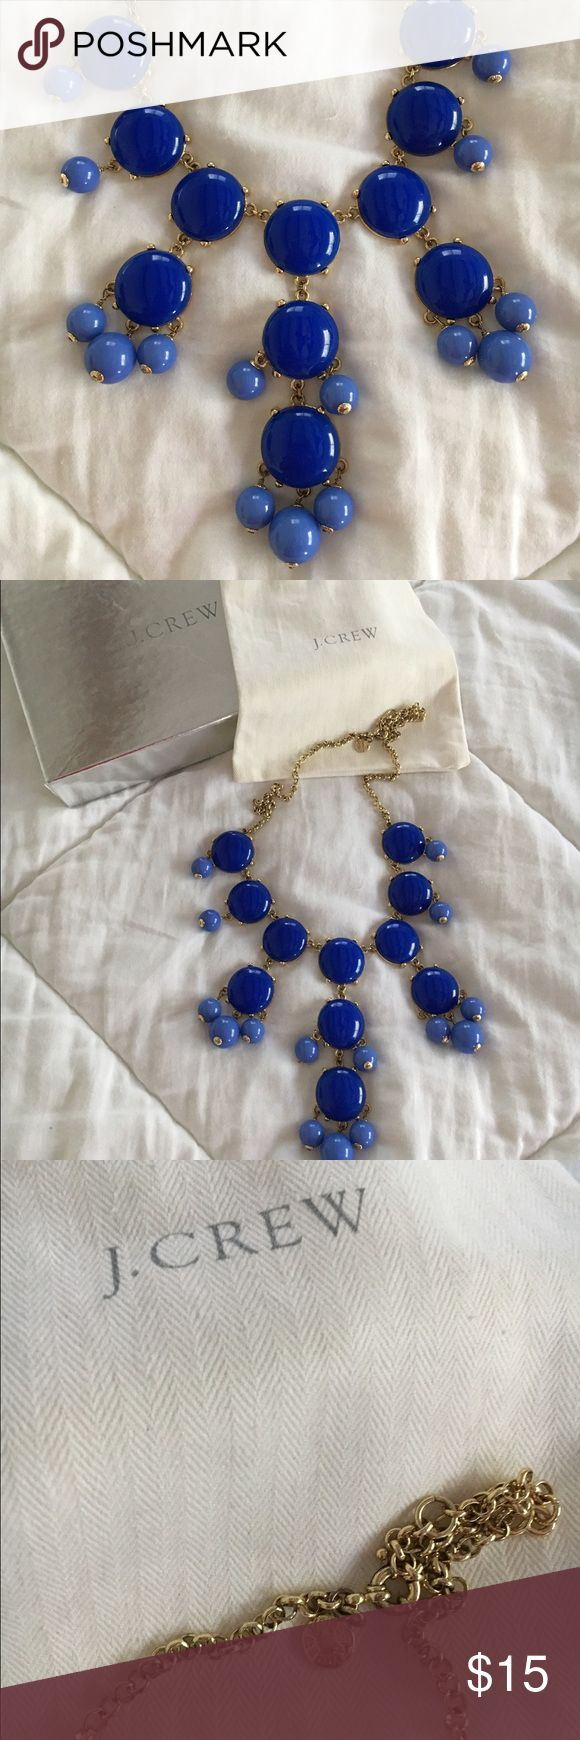 J. Crew Bubble Necklace J. Crew Bubble necklace with original pouch and box. Blue with gold hardware. J. Crew Jewelry Necklaces